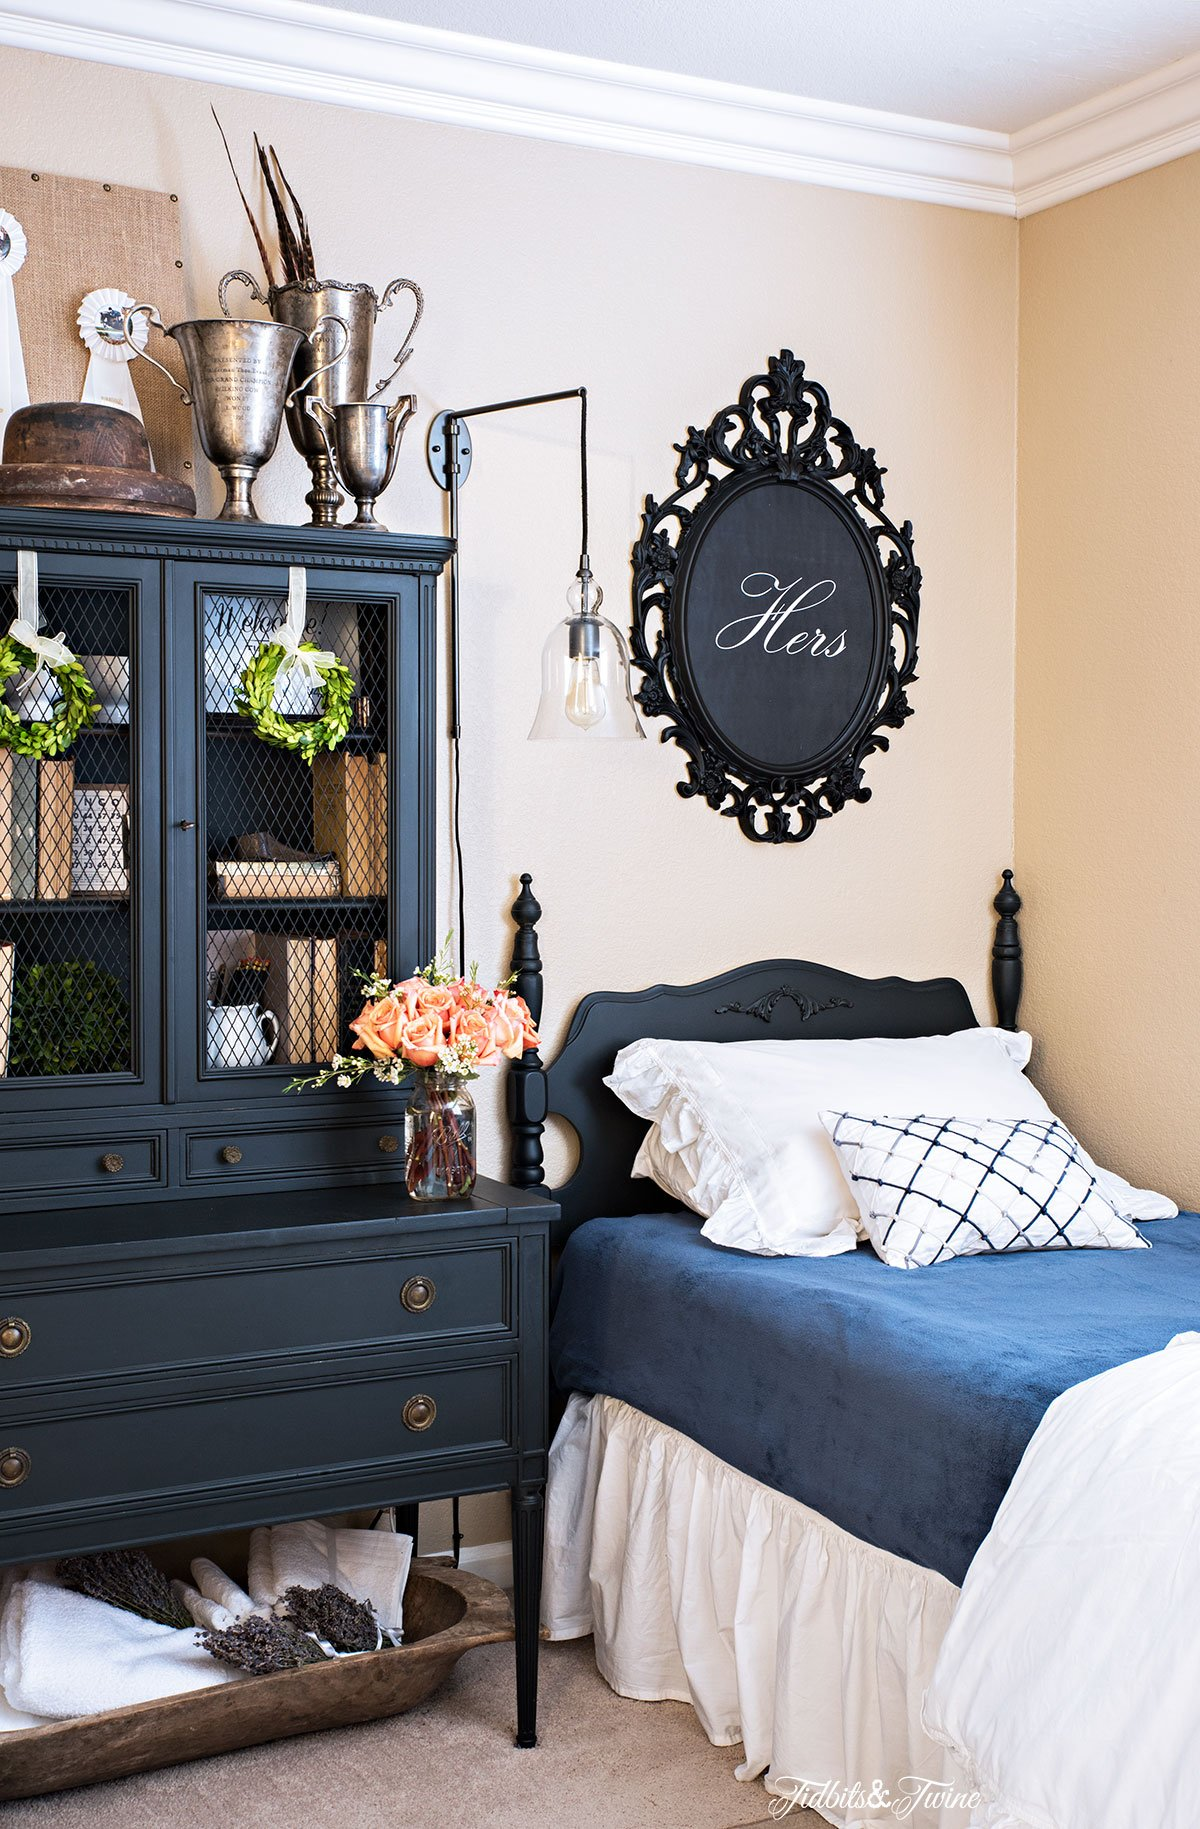 Twin bed guest room with French farmhouse feel from Tidbits&Twine